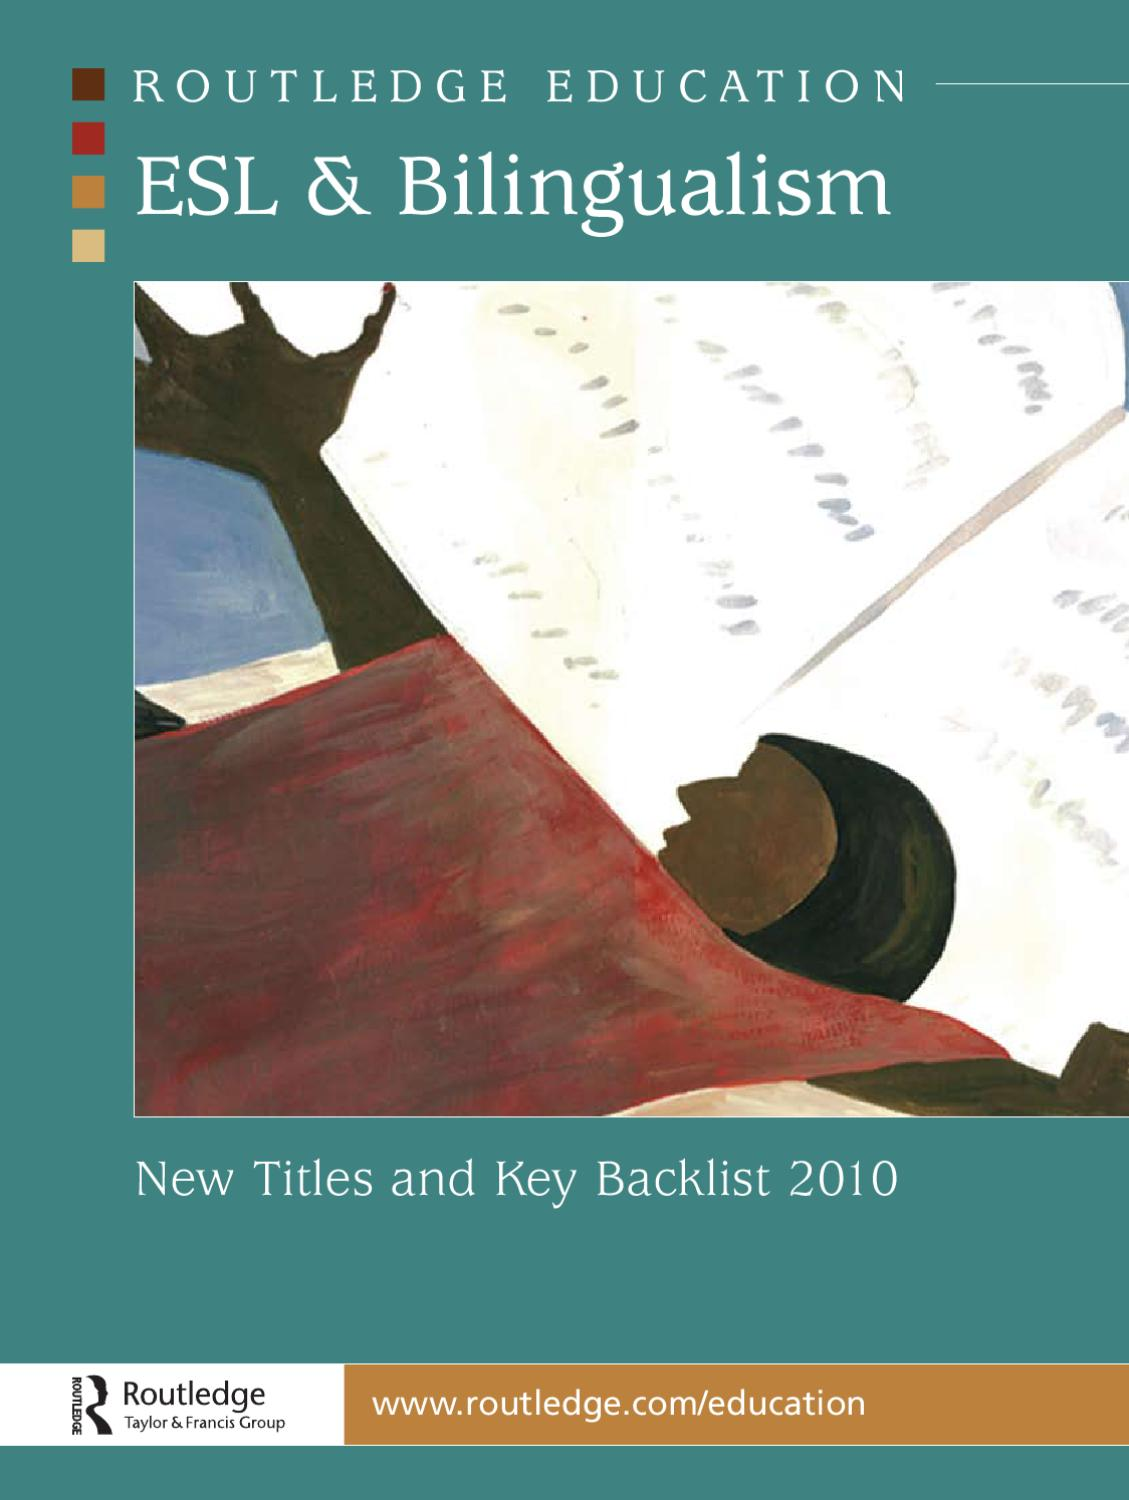 a review of the arguments for and against bilingualism in america El bilingüismo y la educación bilingüe does bilingualism in america bilingual education - alternatives to bilingual education - arguments for and against.